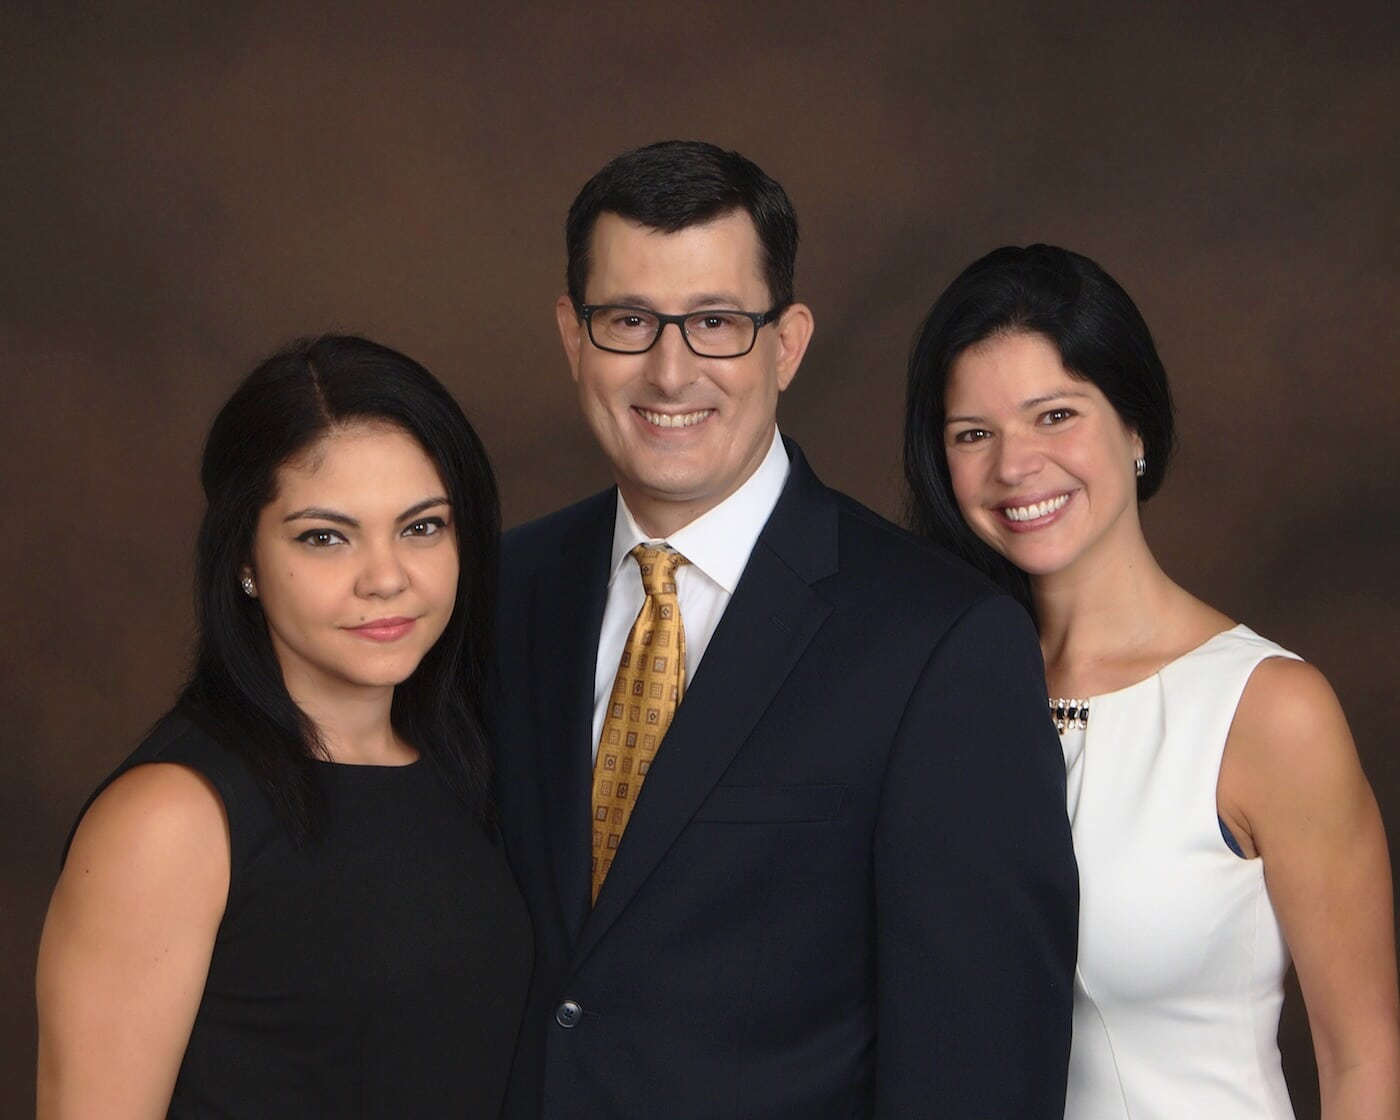 Orlando Immigration Attorneys